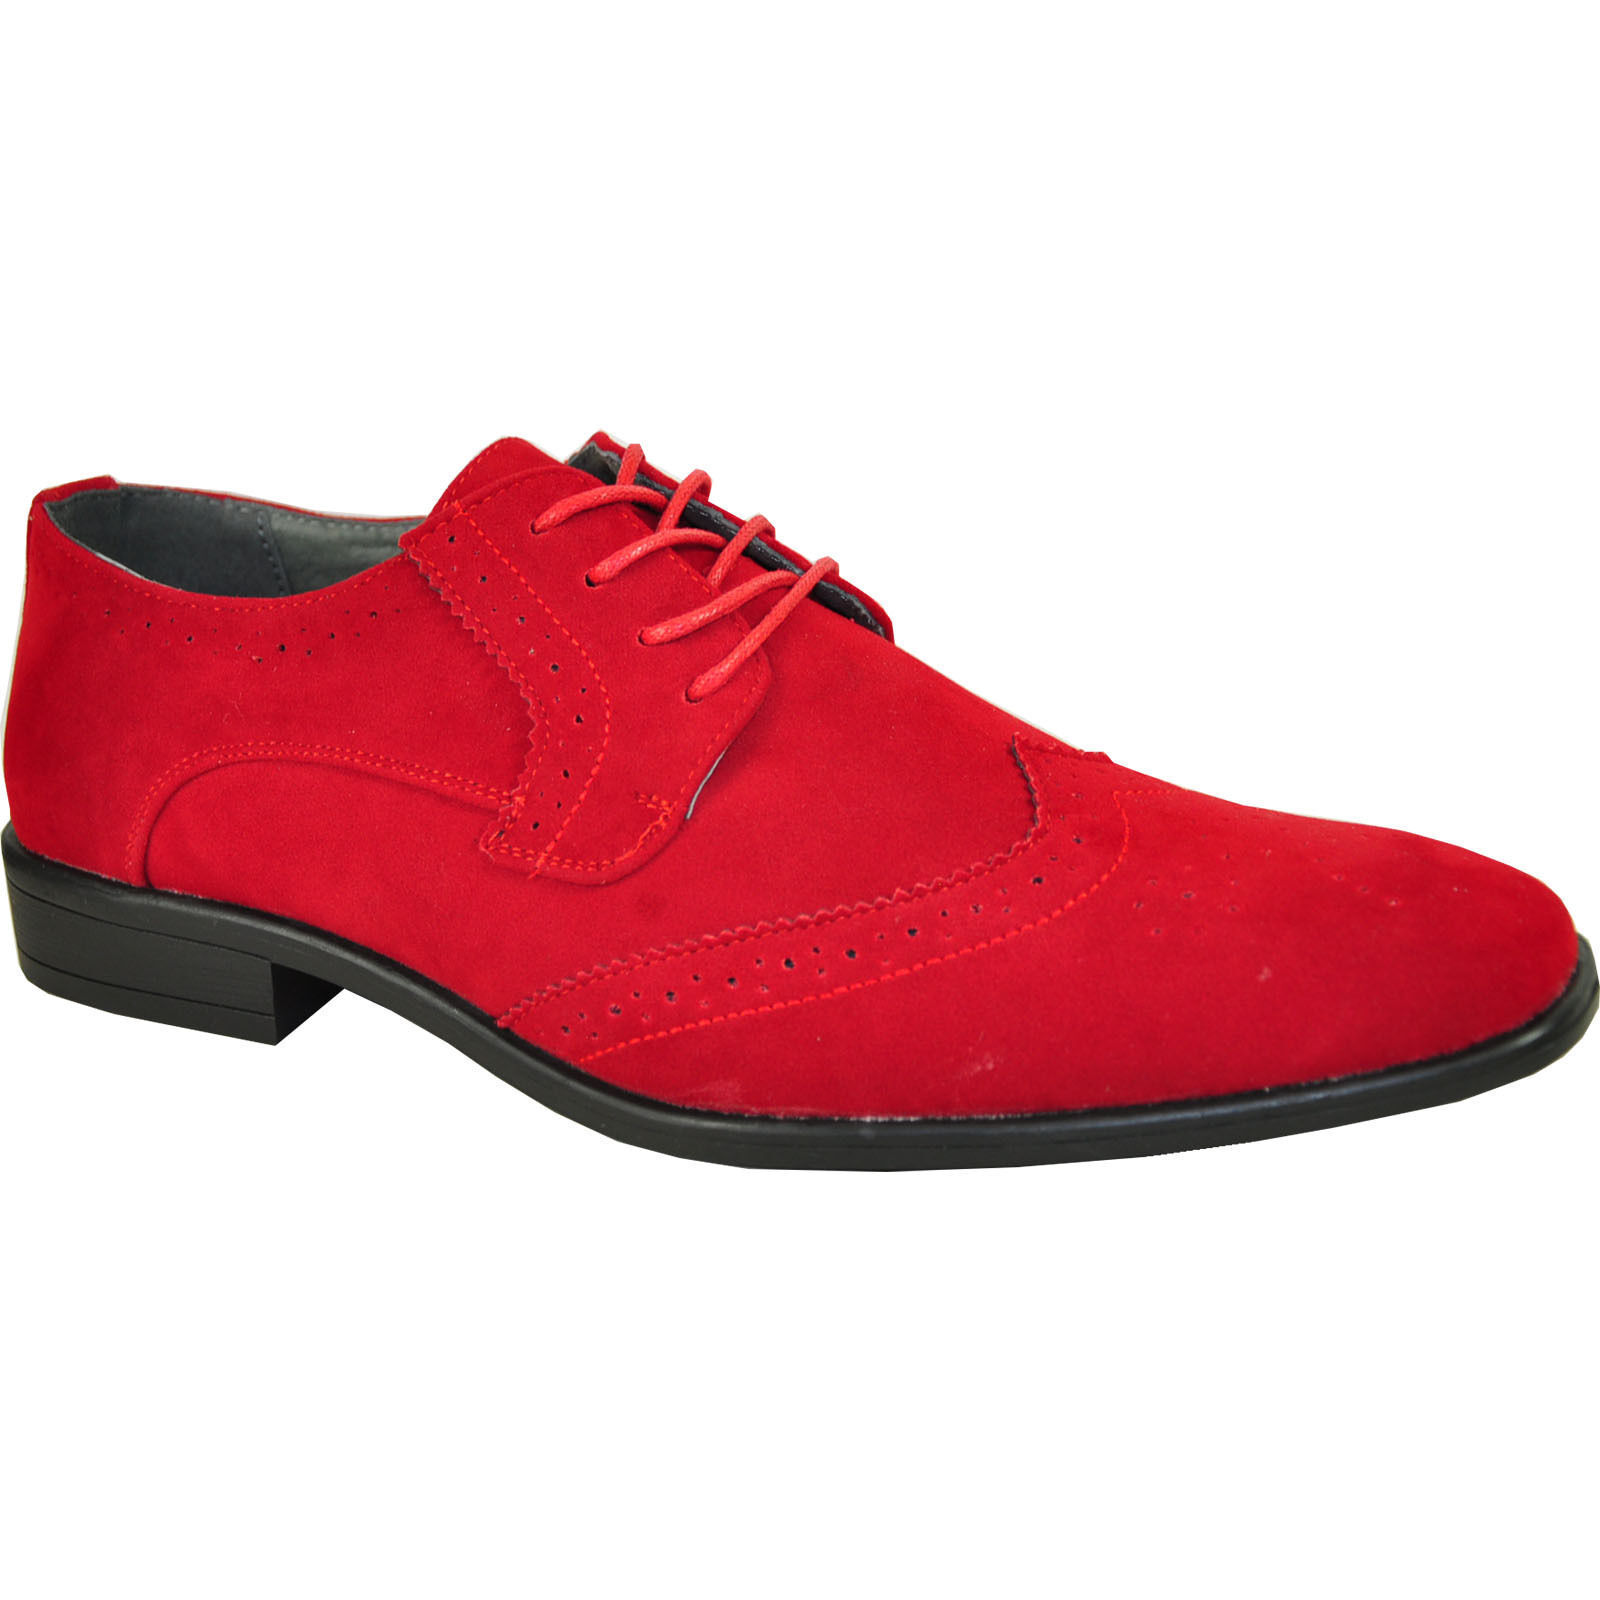 BRAVO KING-3 Dress schuhe Classic Faux rot Suede Oxford Leather Lining rot Faux 8fa52d